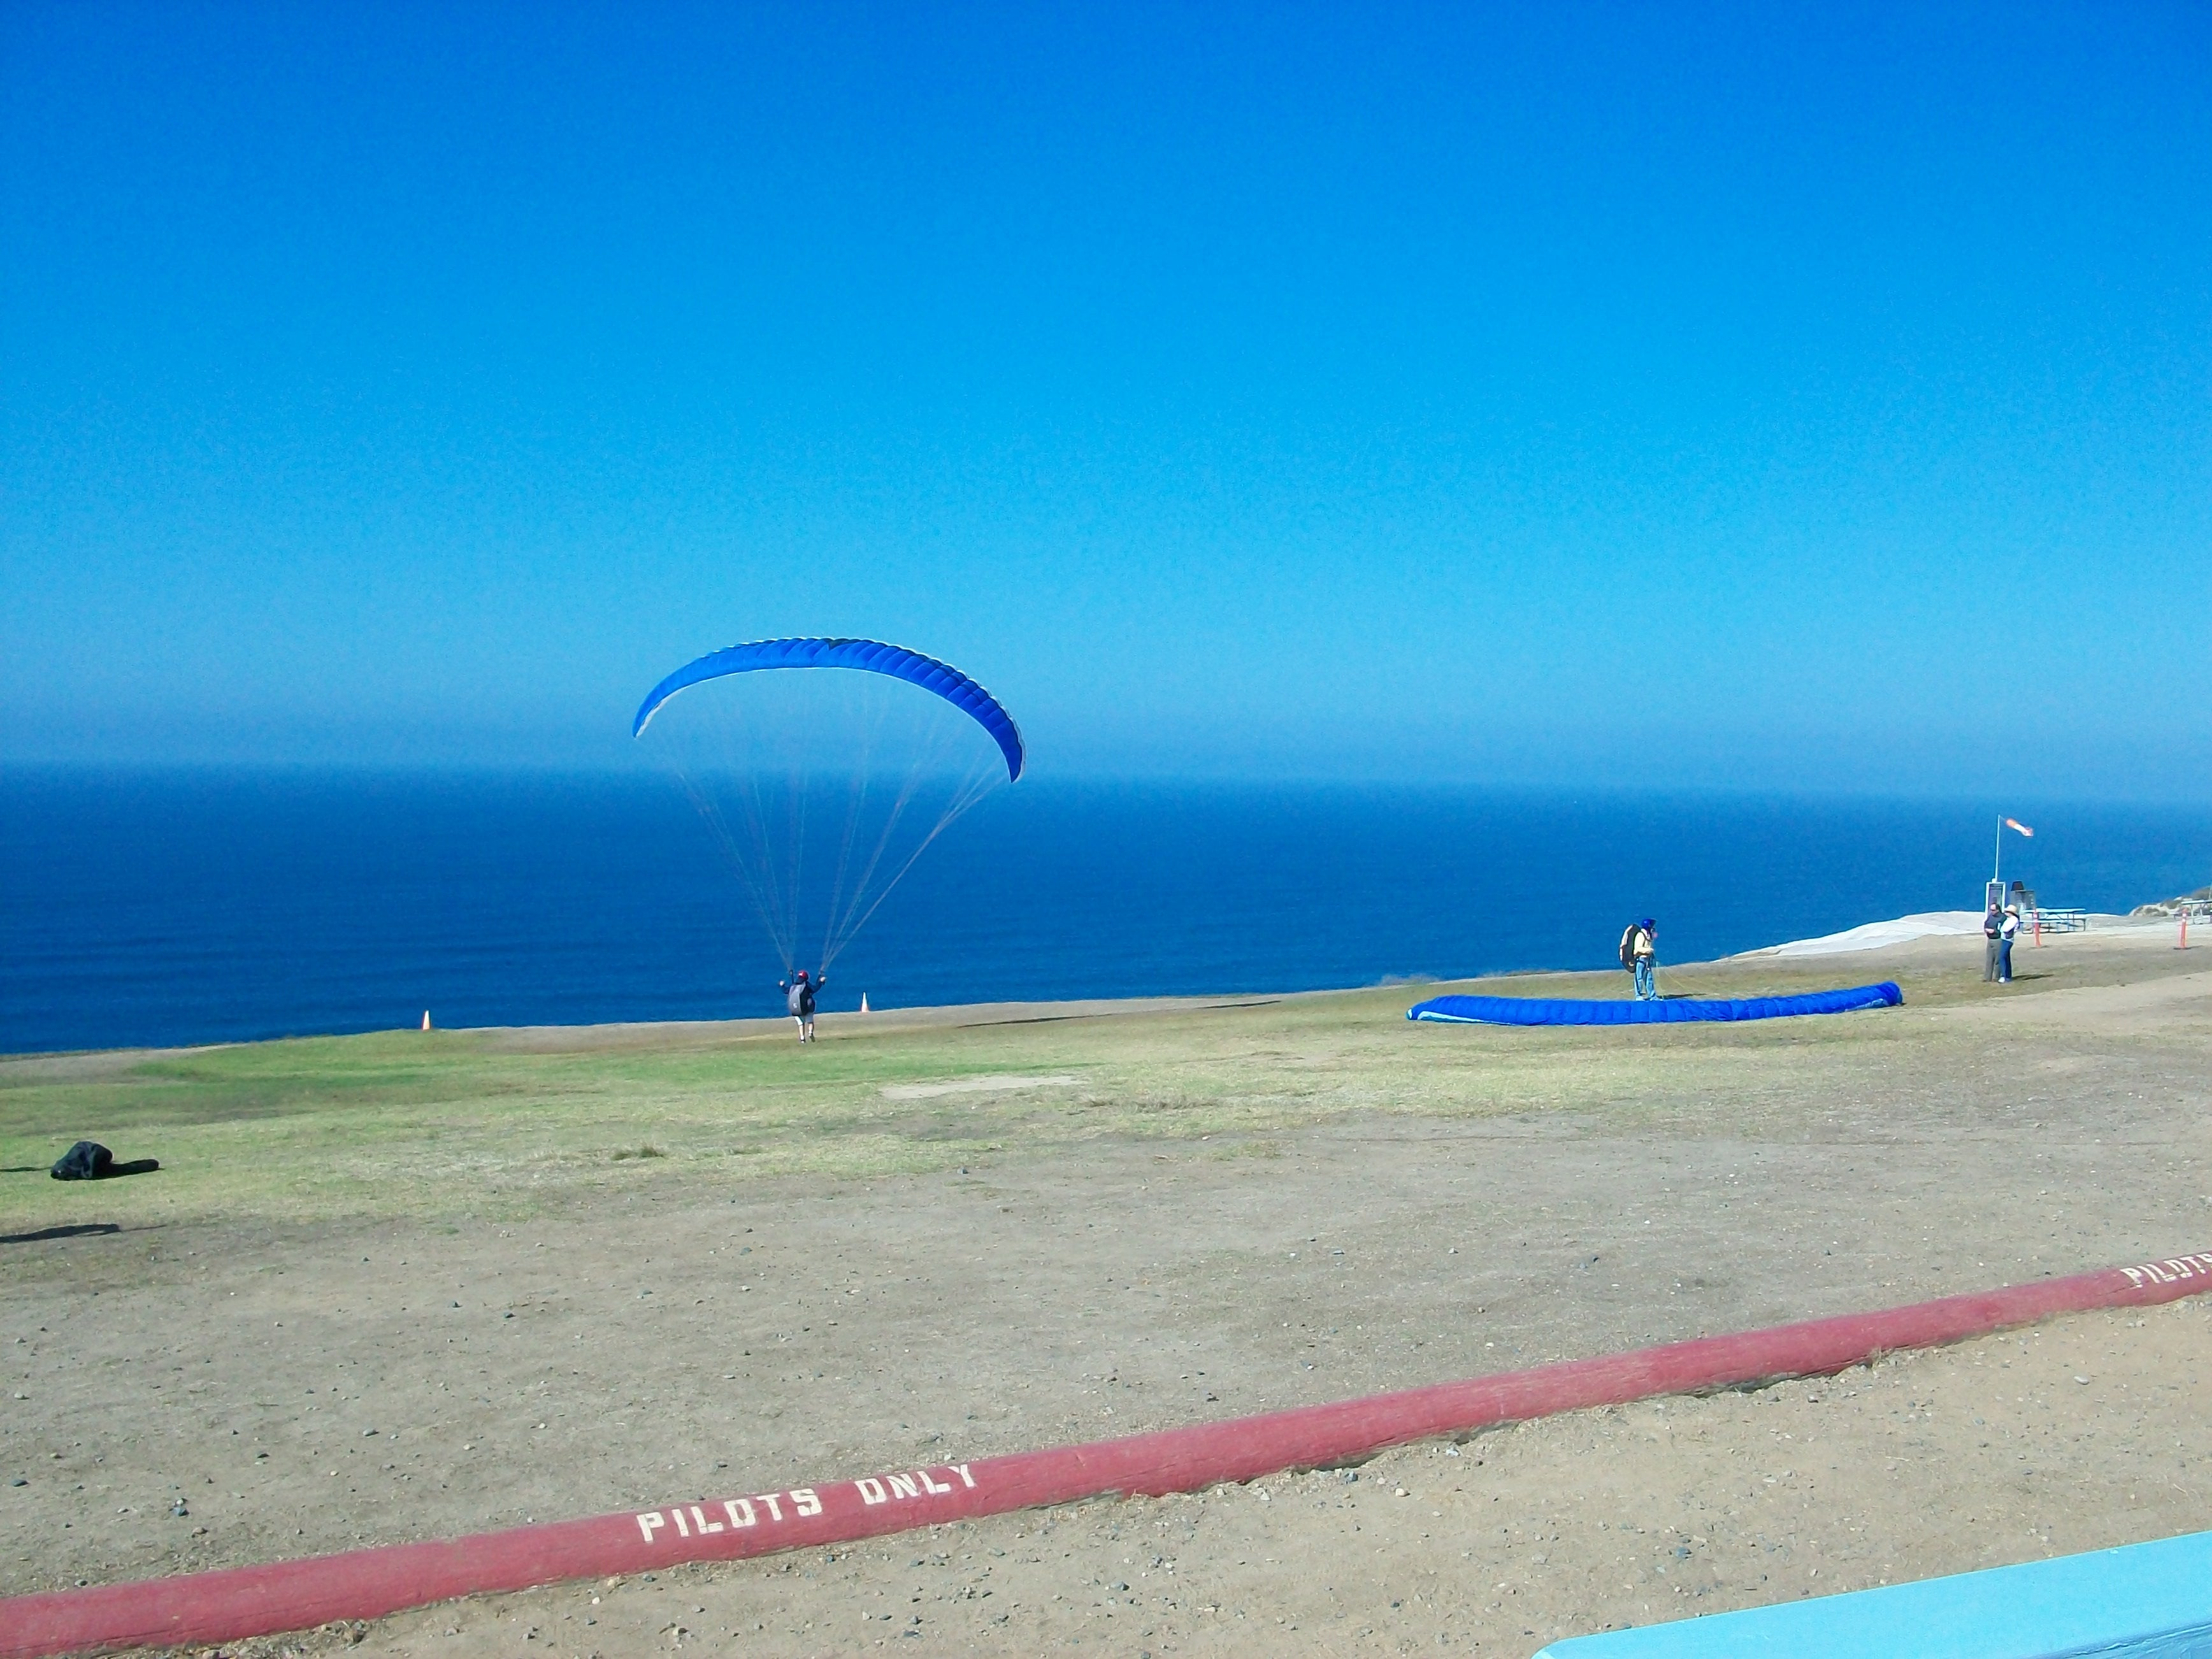 Sea in Torrey Pines Gliderport